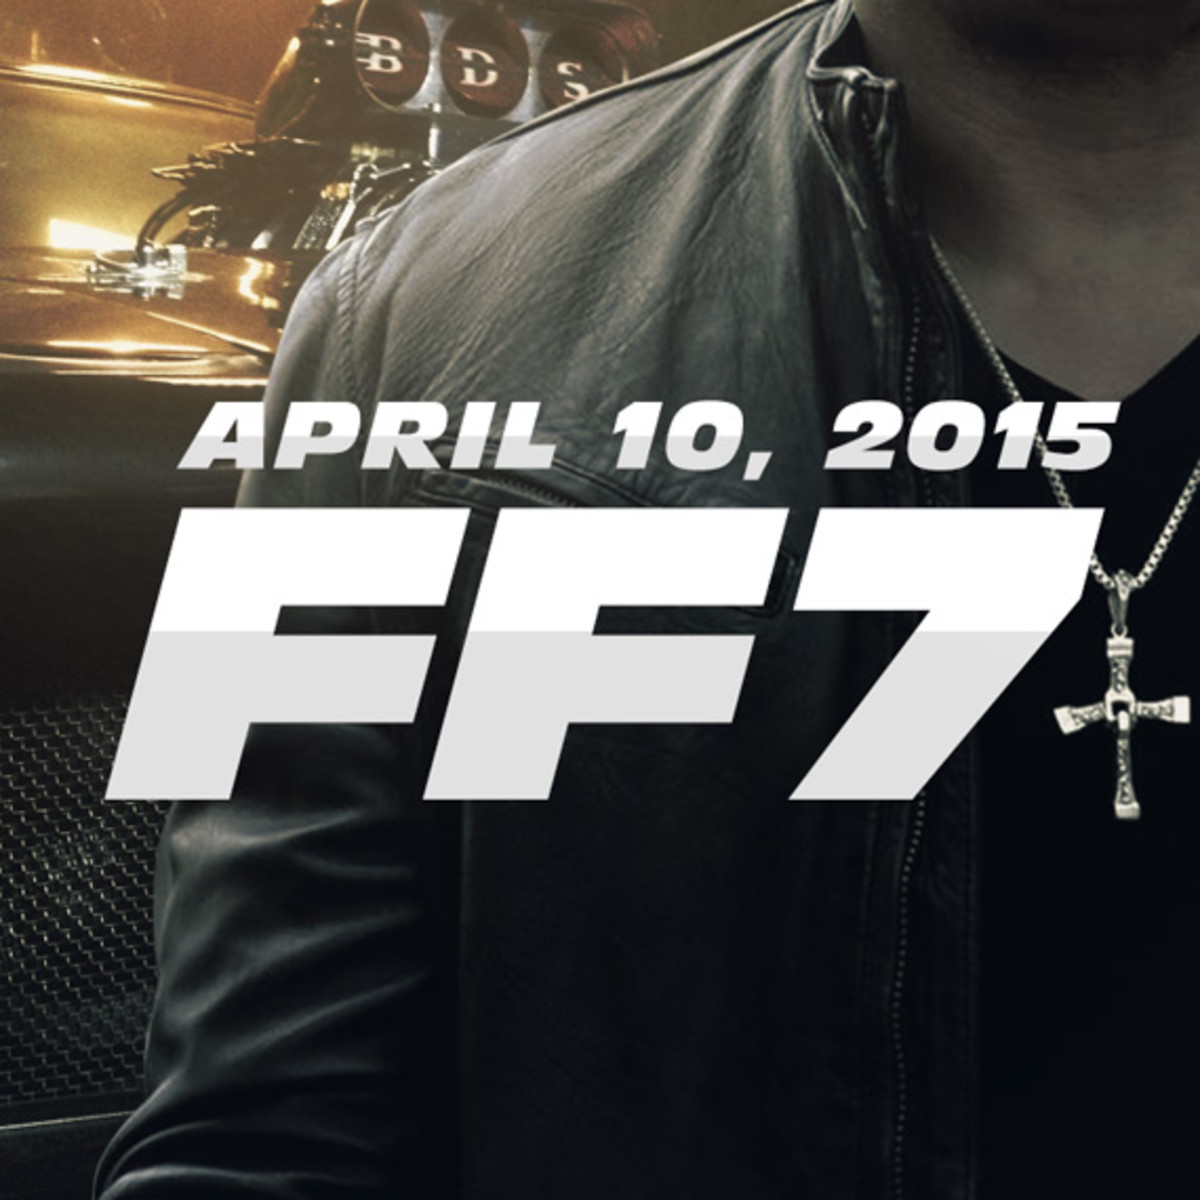 Vin Diesel Confirms Fast & Furious 7 To Be In Theaters On April 10th, 2015